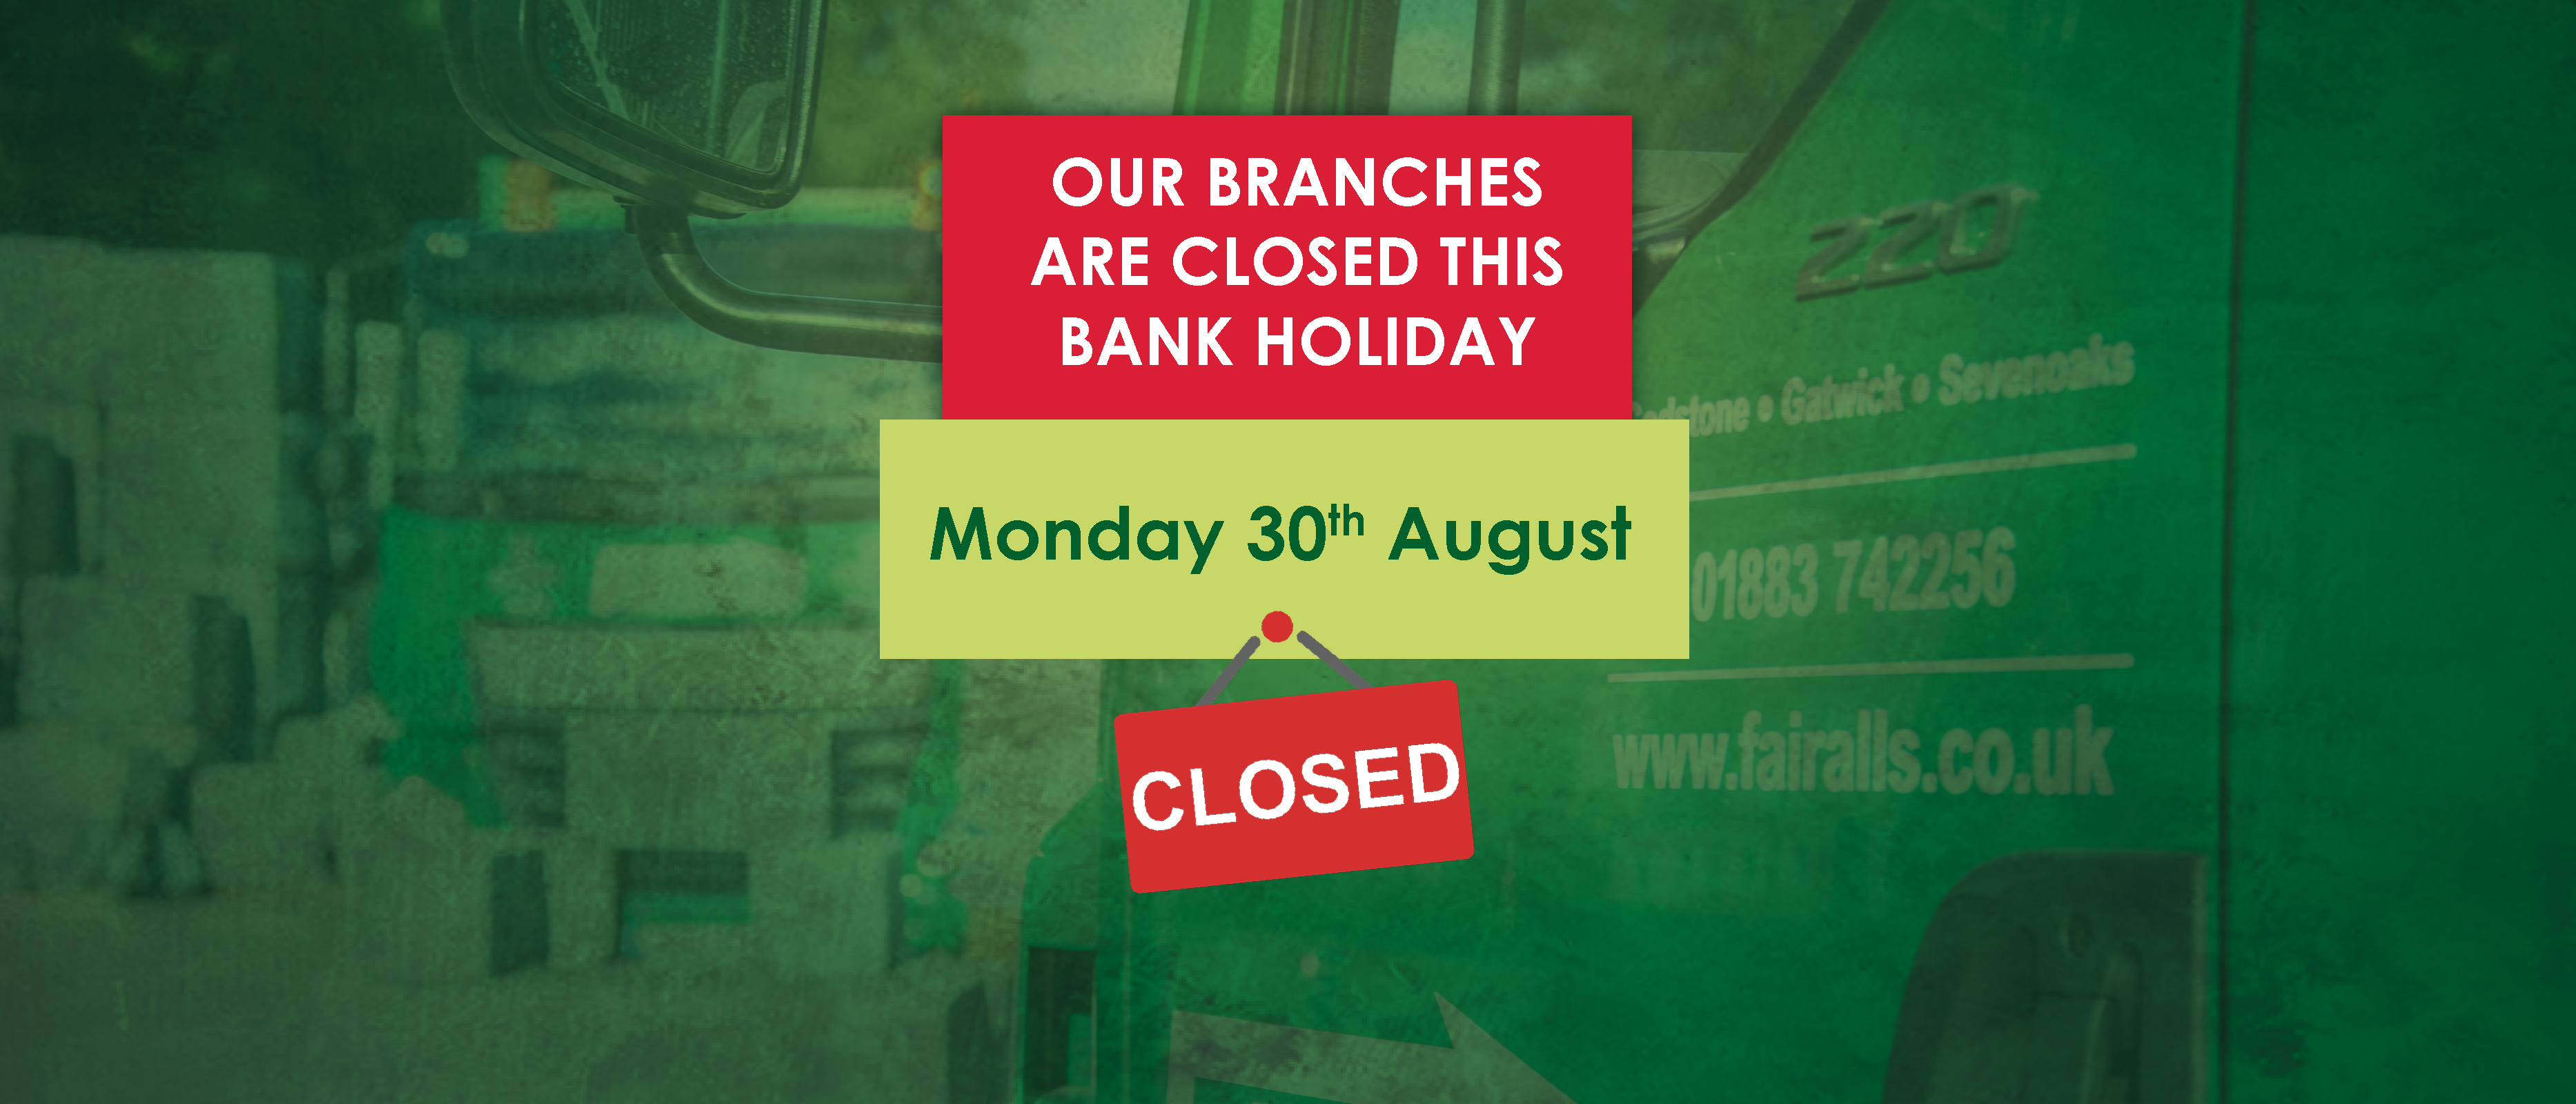 We're Closed on Bank Holiday Monday